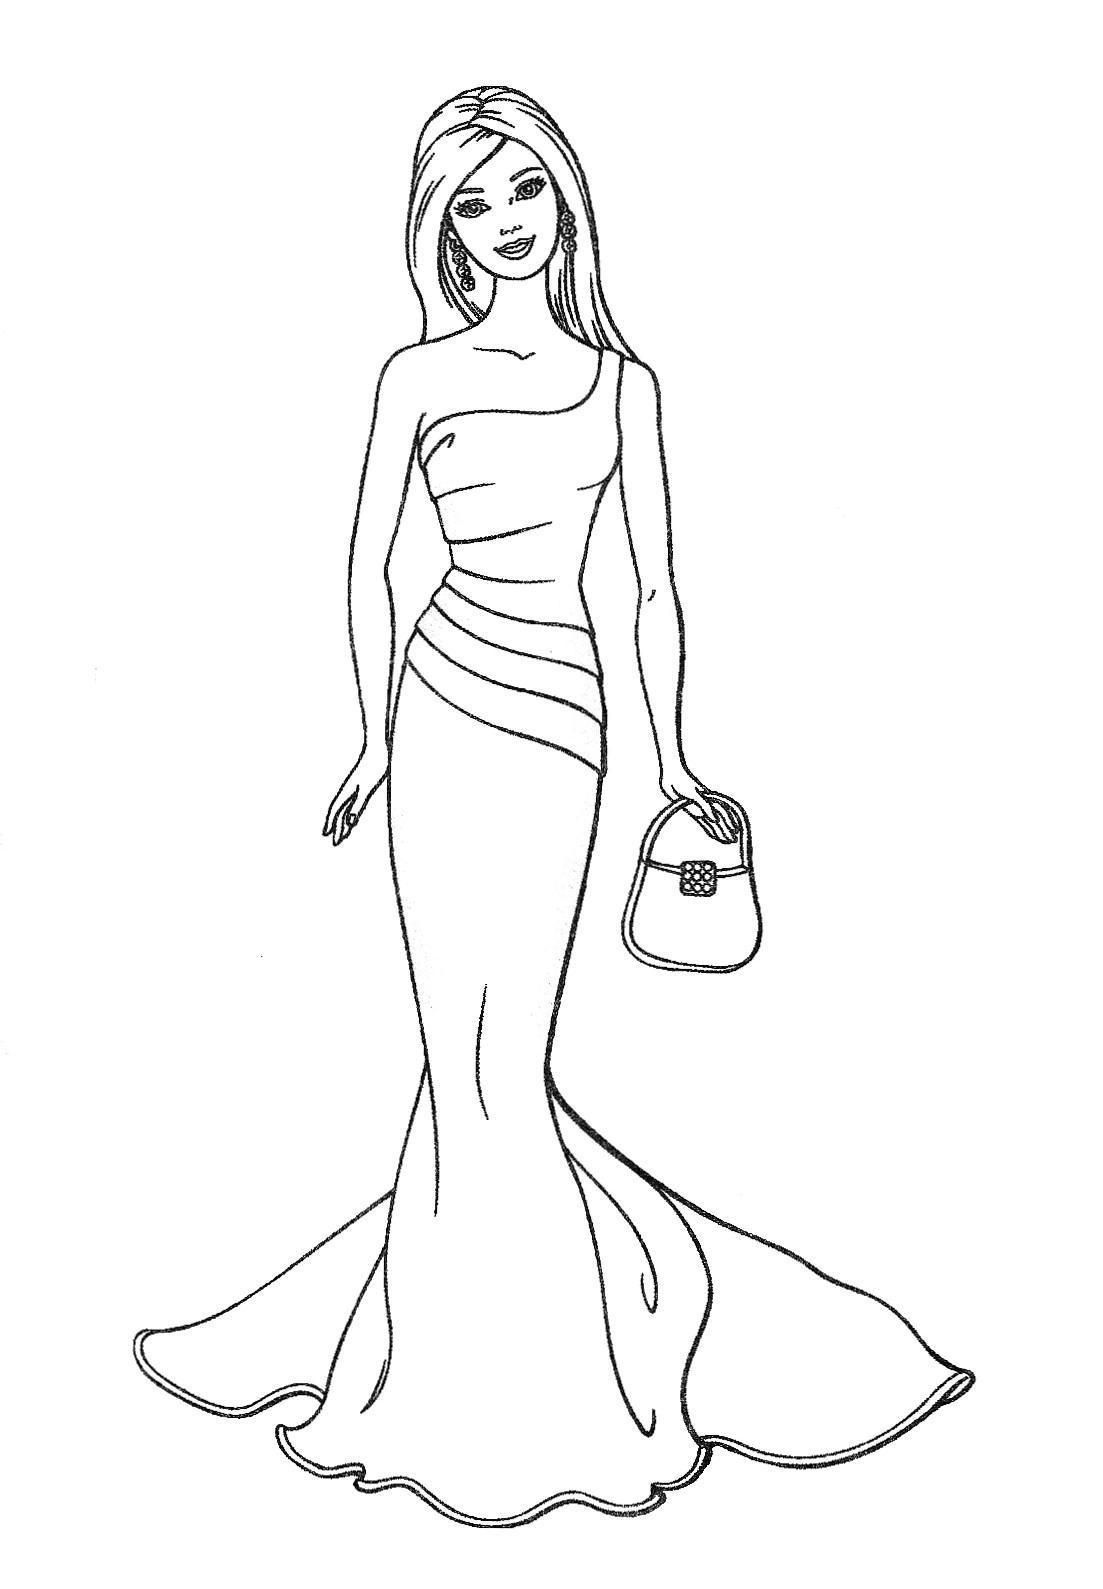 FREE printable BARBIE COLORING PAGES, ACTIVITY SHEETS, PAPER CRAFTS ...